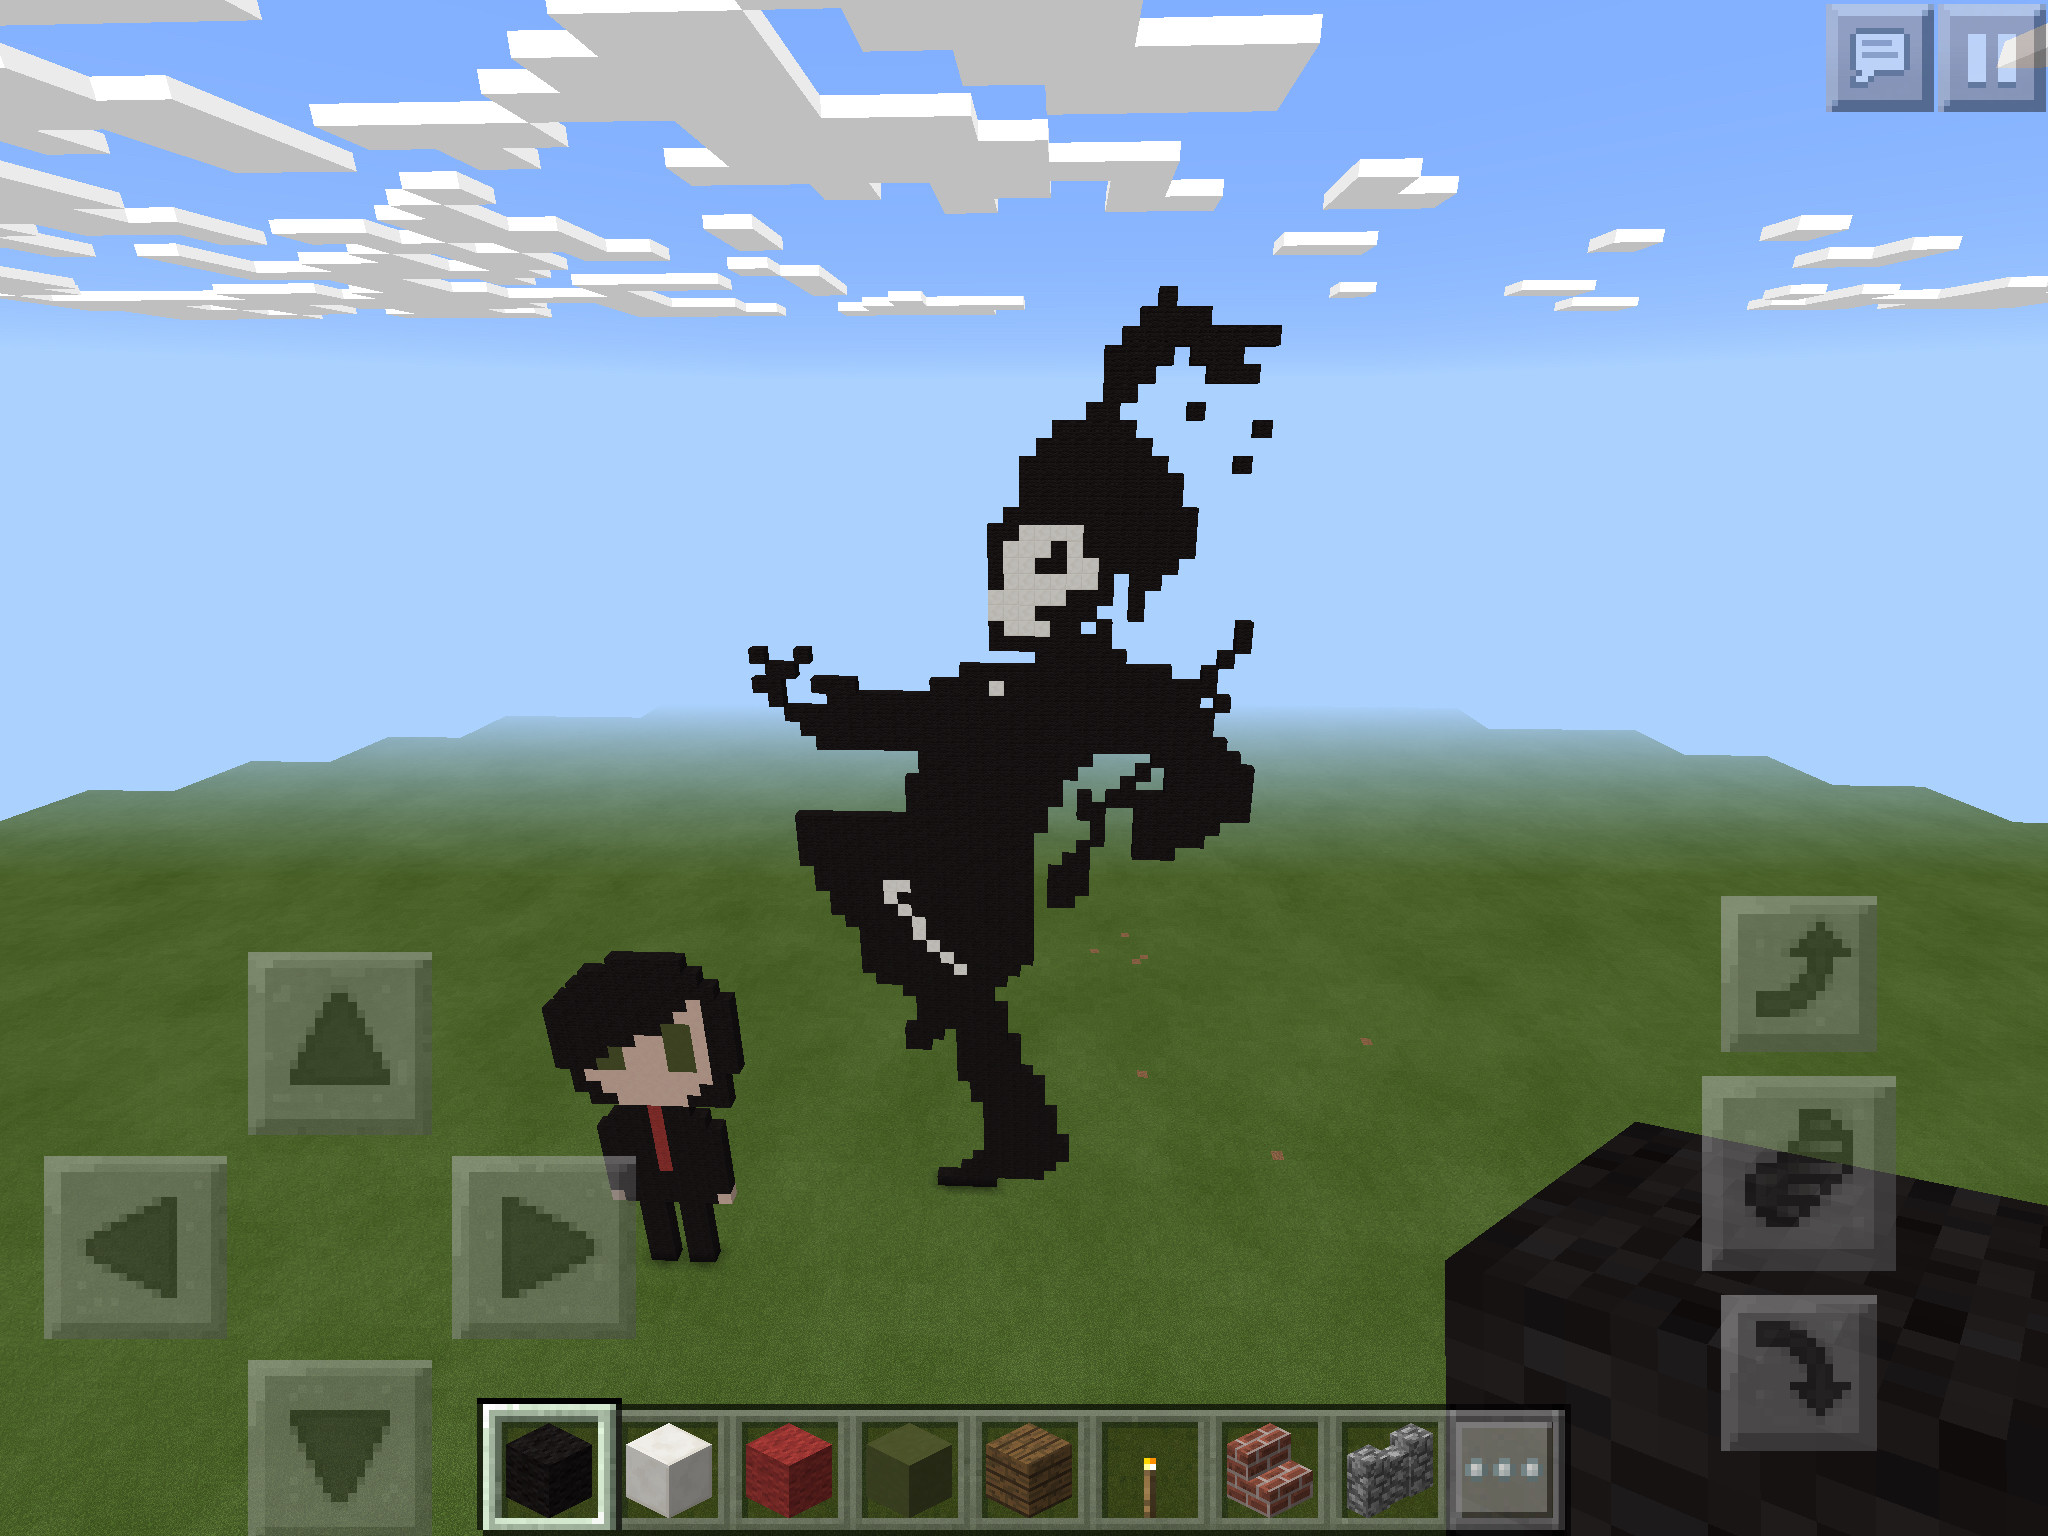 See, the beauty of minecraft and mcr.